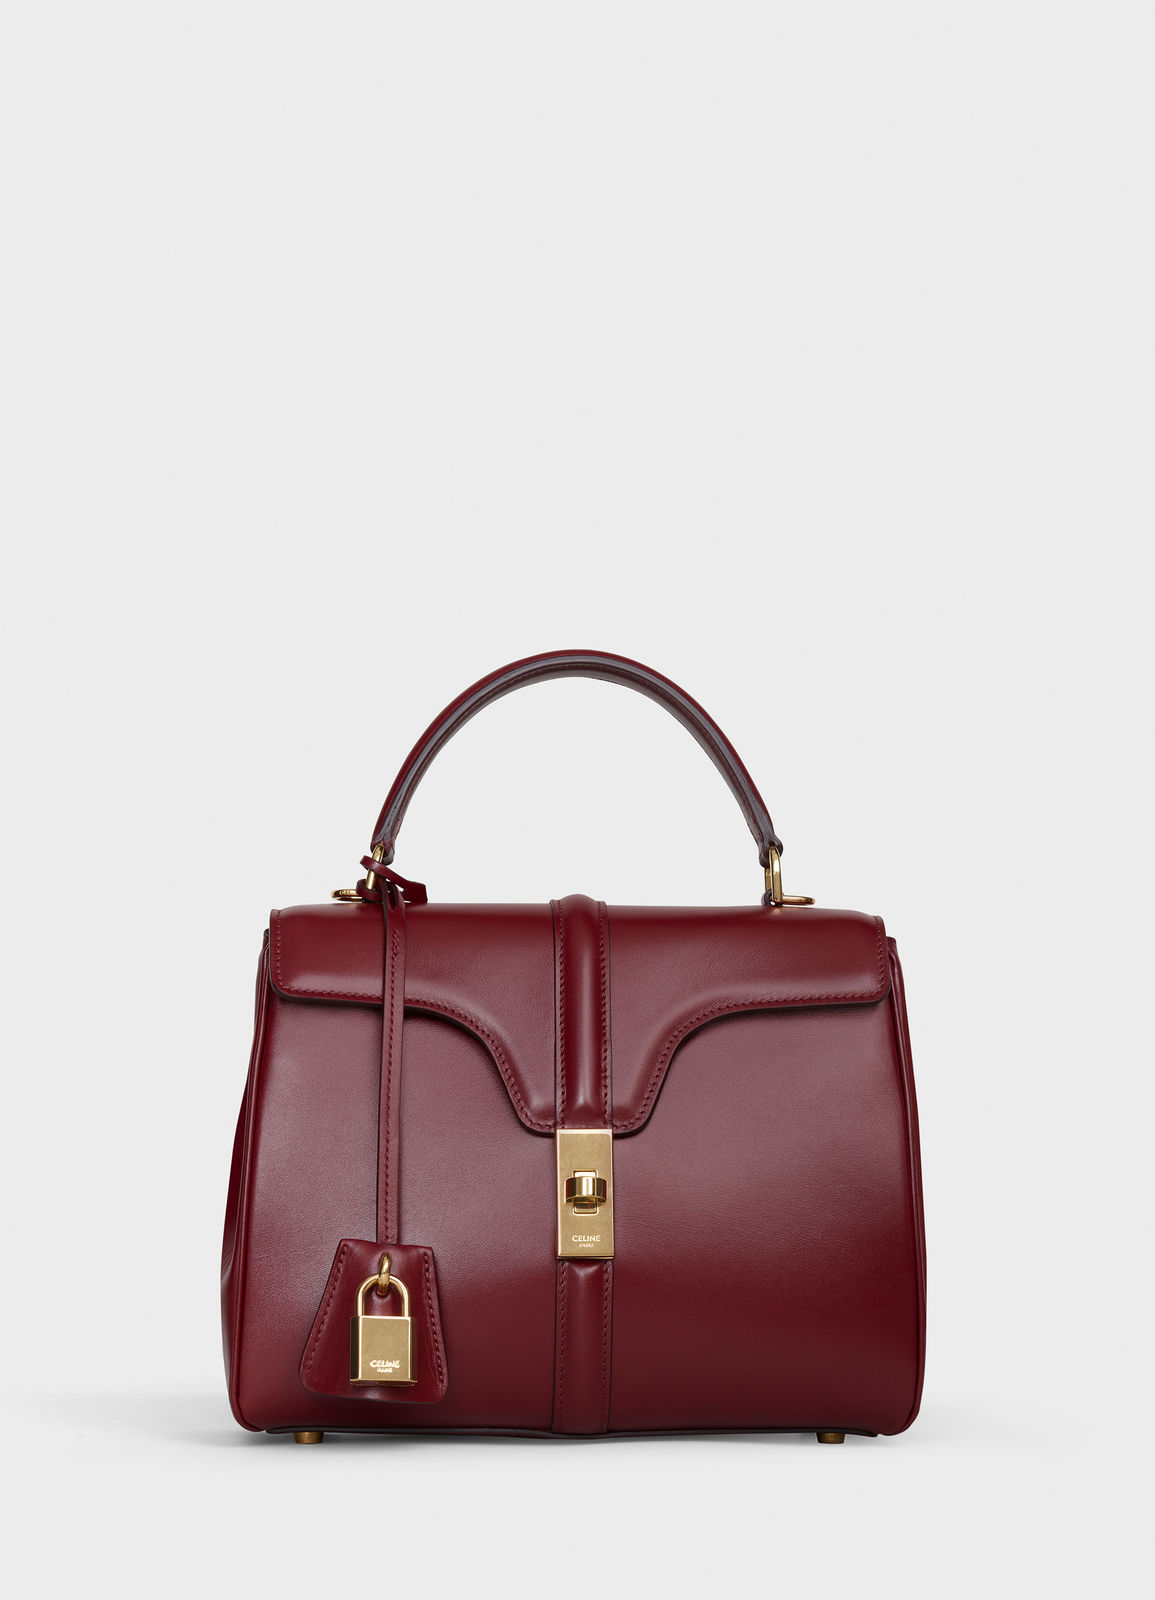 CELINE SMALL 16 BAG IN SATINATED CALFSKIN 188003 Burgundy